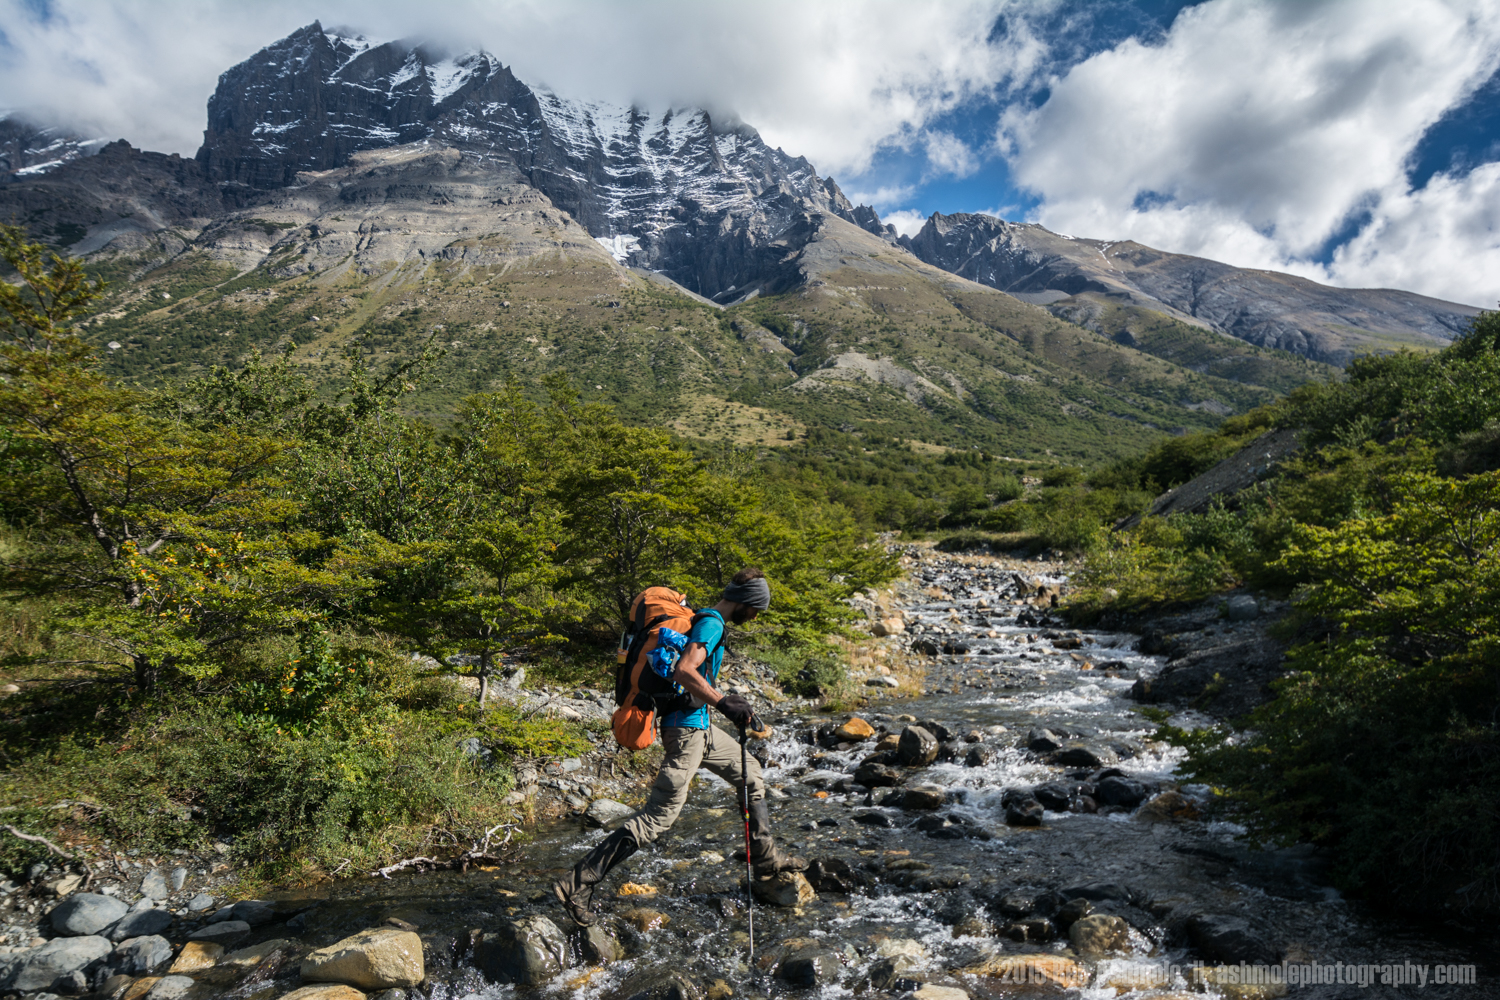 Crossing The River 2, Torres Del Paine, Patagonia, Chile